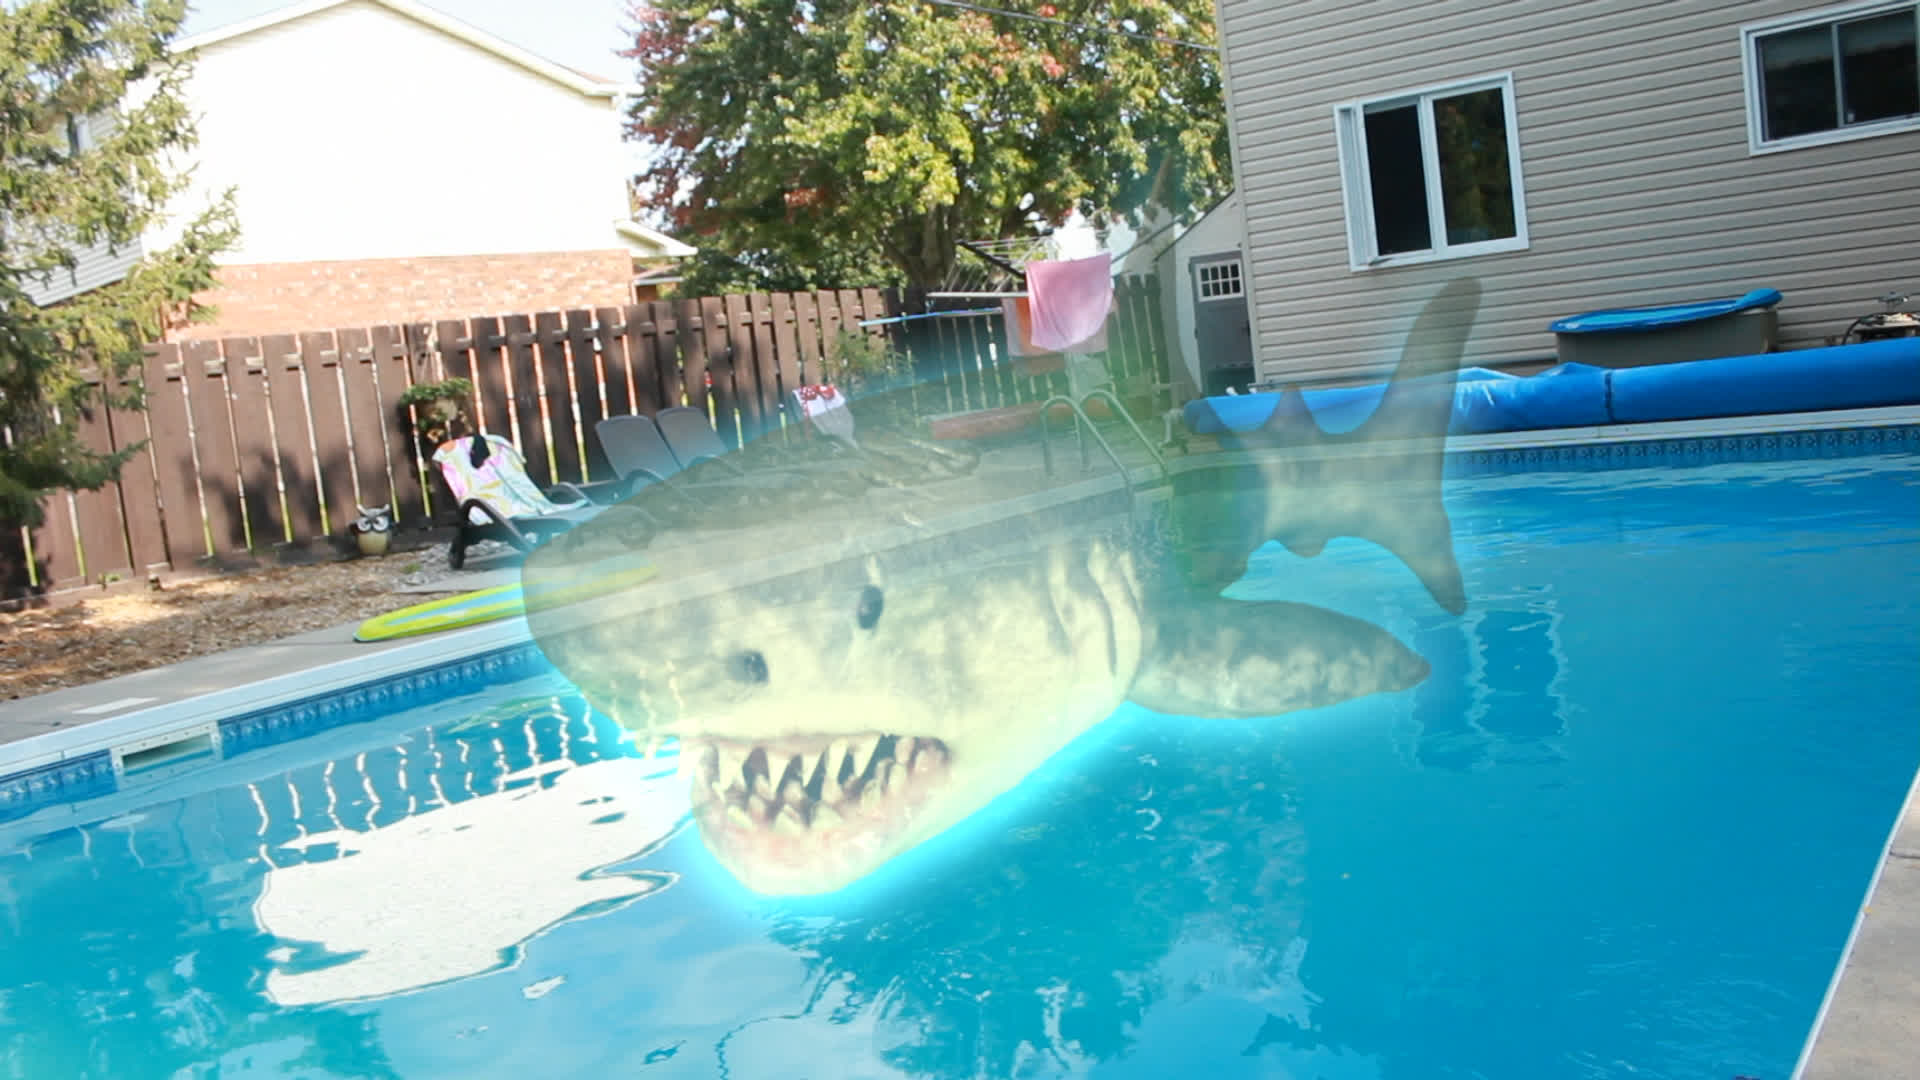 The ghost killer shark hovers above the swimming pool in Ouija Shark (2020)